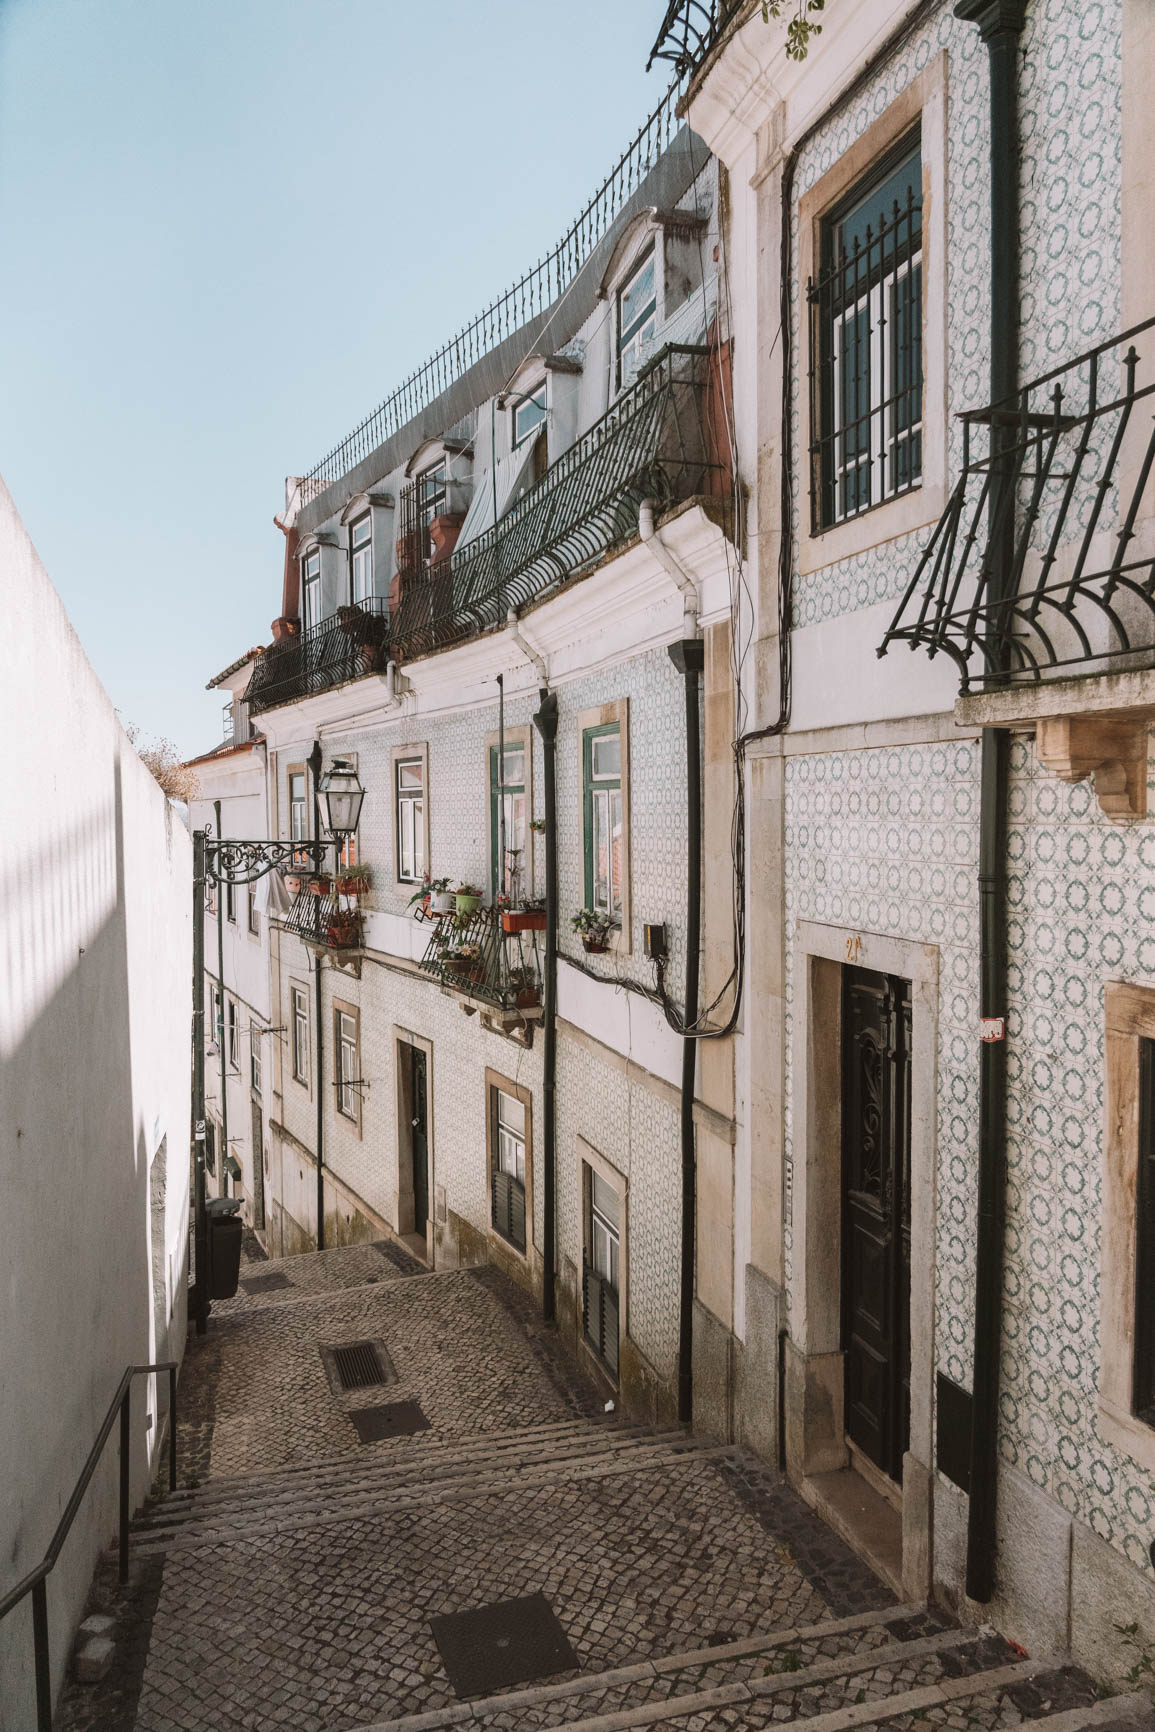 Fun Things to do in Lisbon Portugal - Explore Bairro Alto and Alfama #Lisbon #Portugal #Europe 2 - 3 Days Itinerary in Lisbon